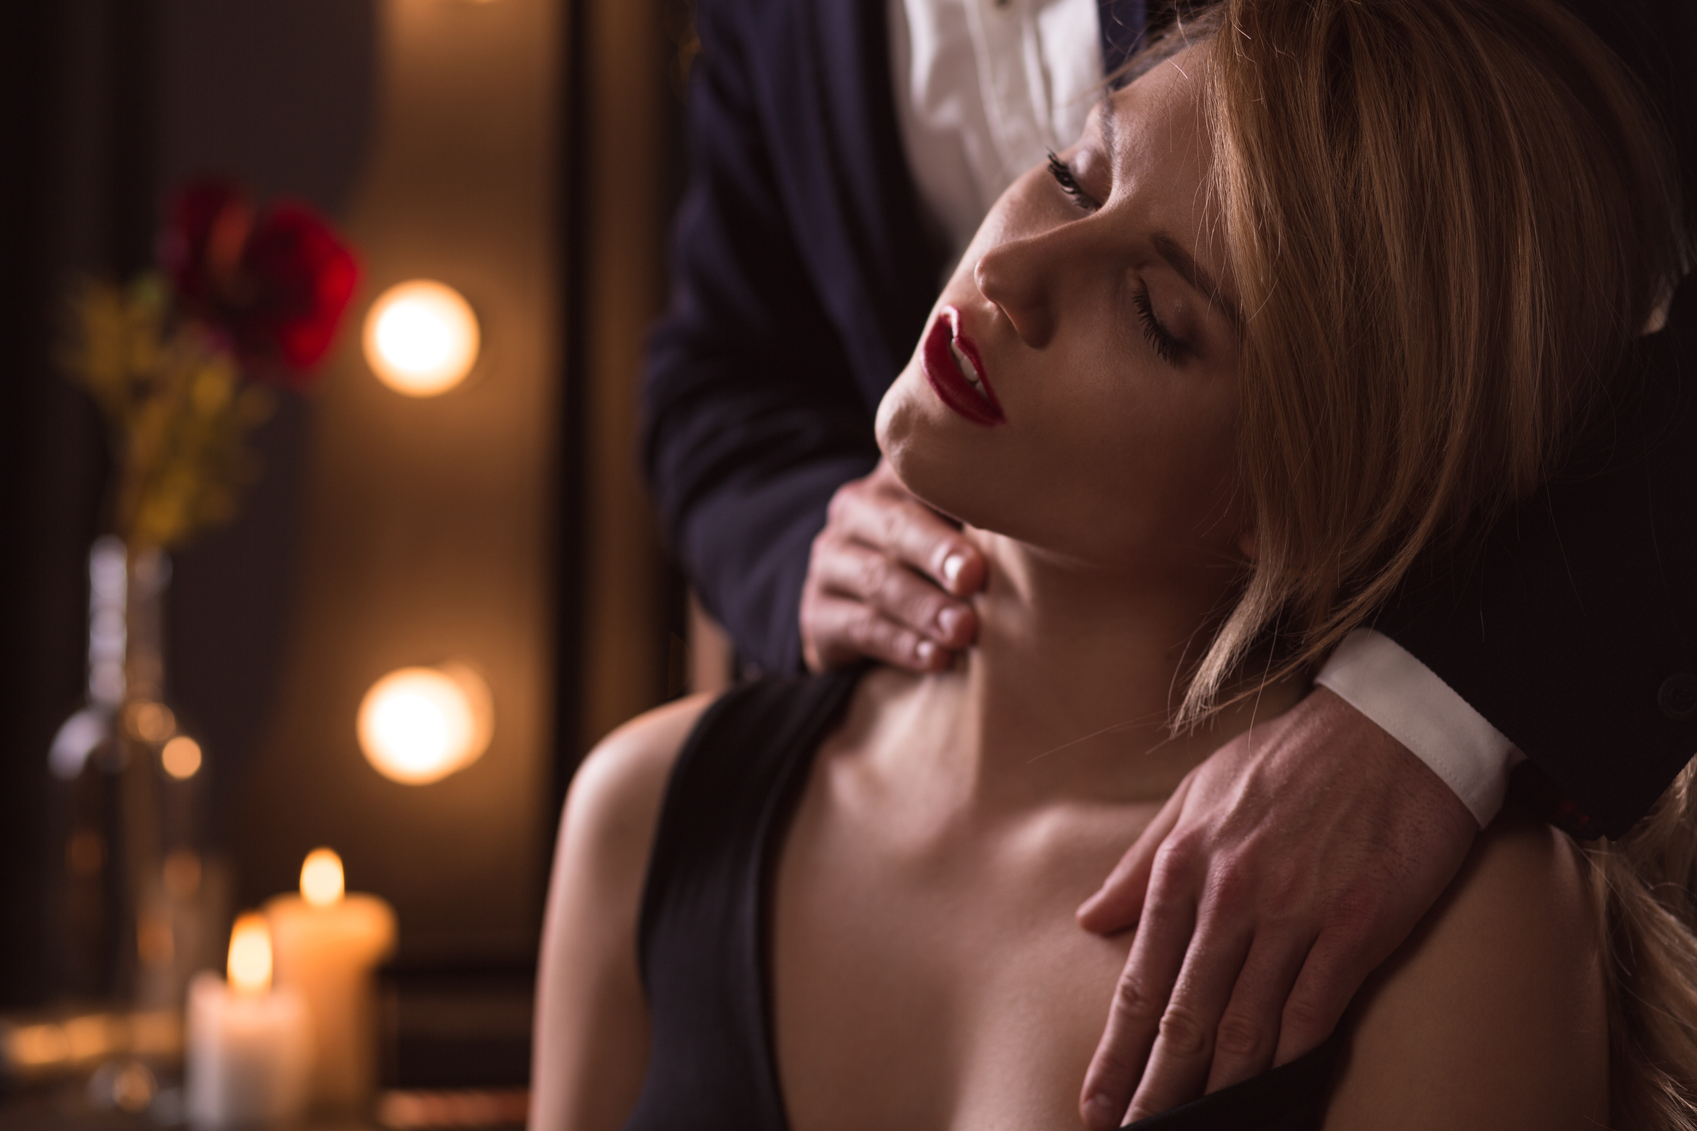 10 Erogenous Zones You Never Considered That Can Drive Your Partner Wild In Bed